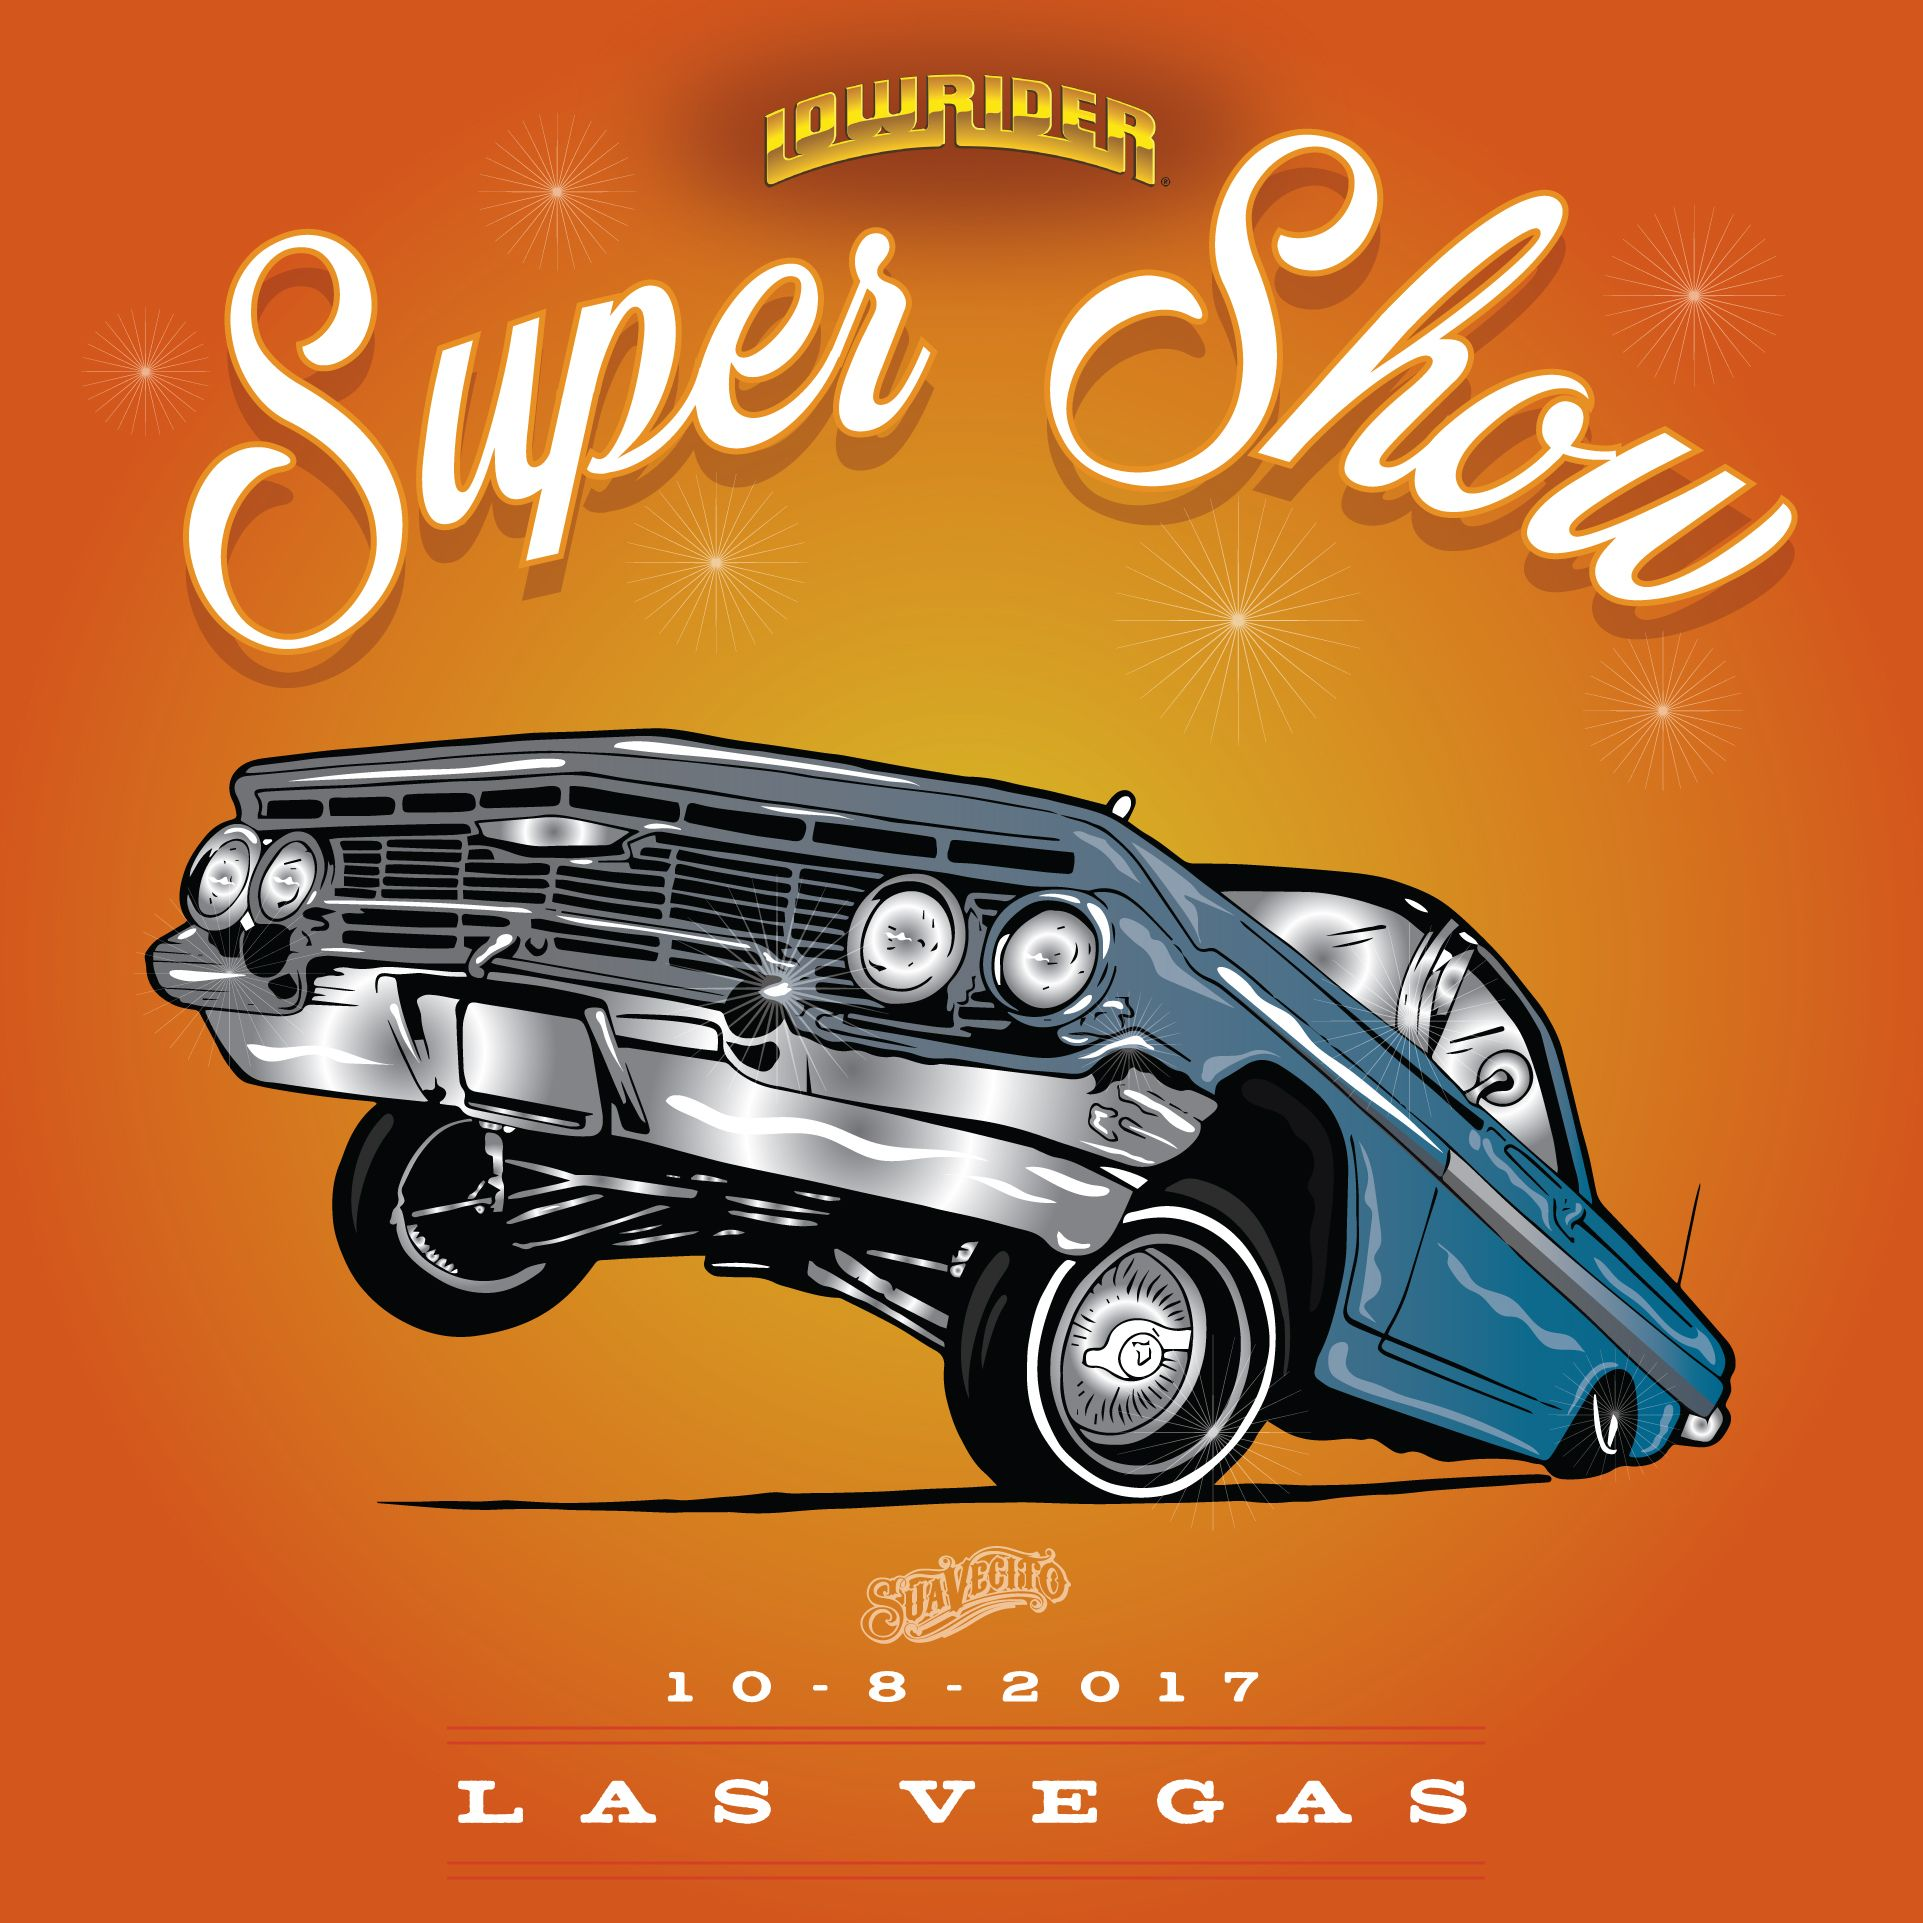 Join us for the hottest Lowrider Car Show this weekend in